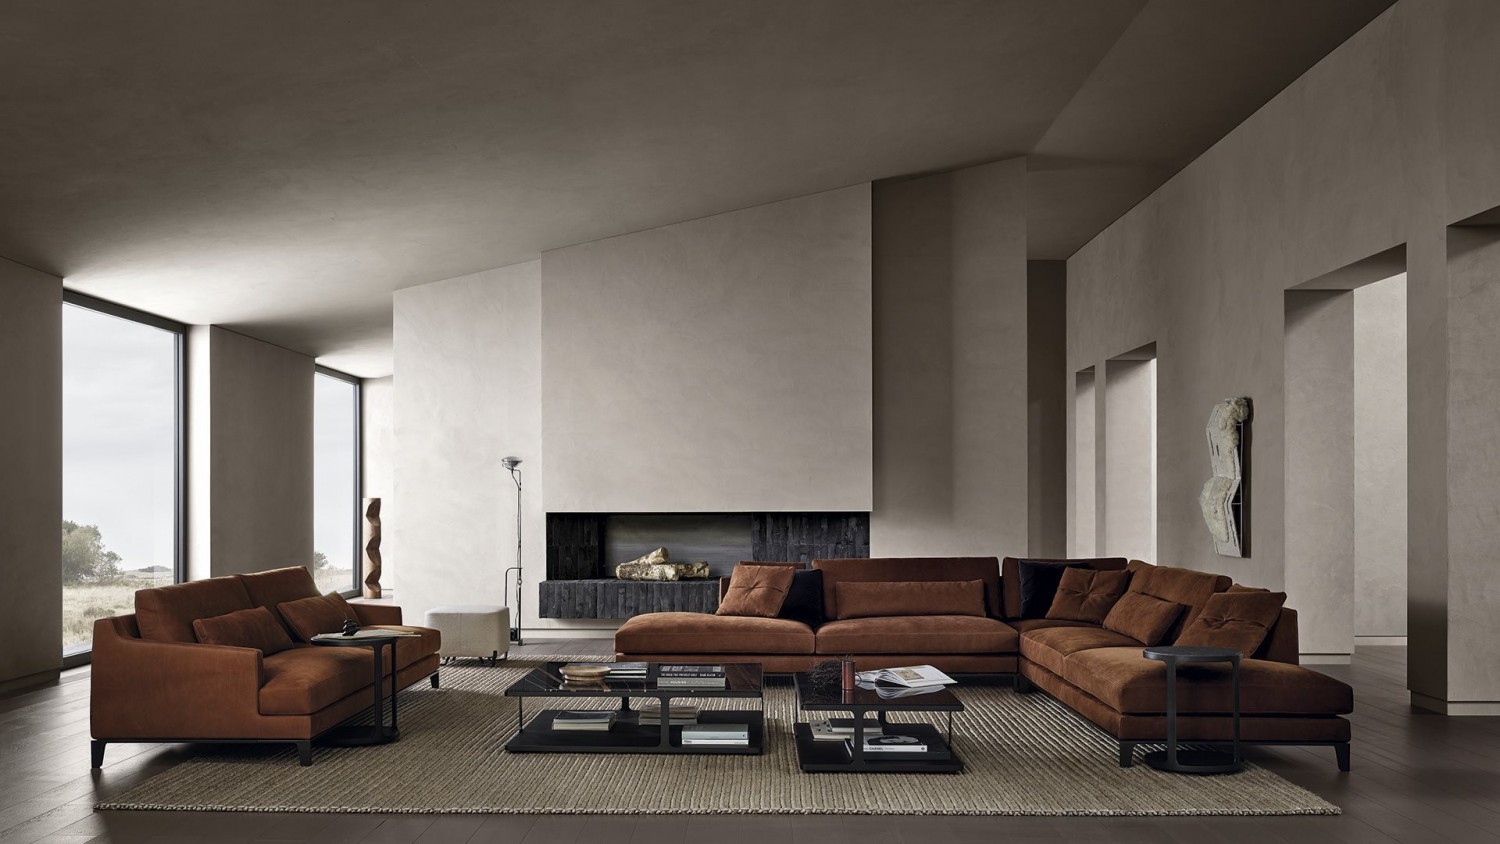 Poliform | Harmonieus interieur